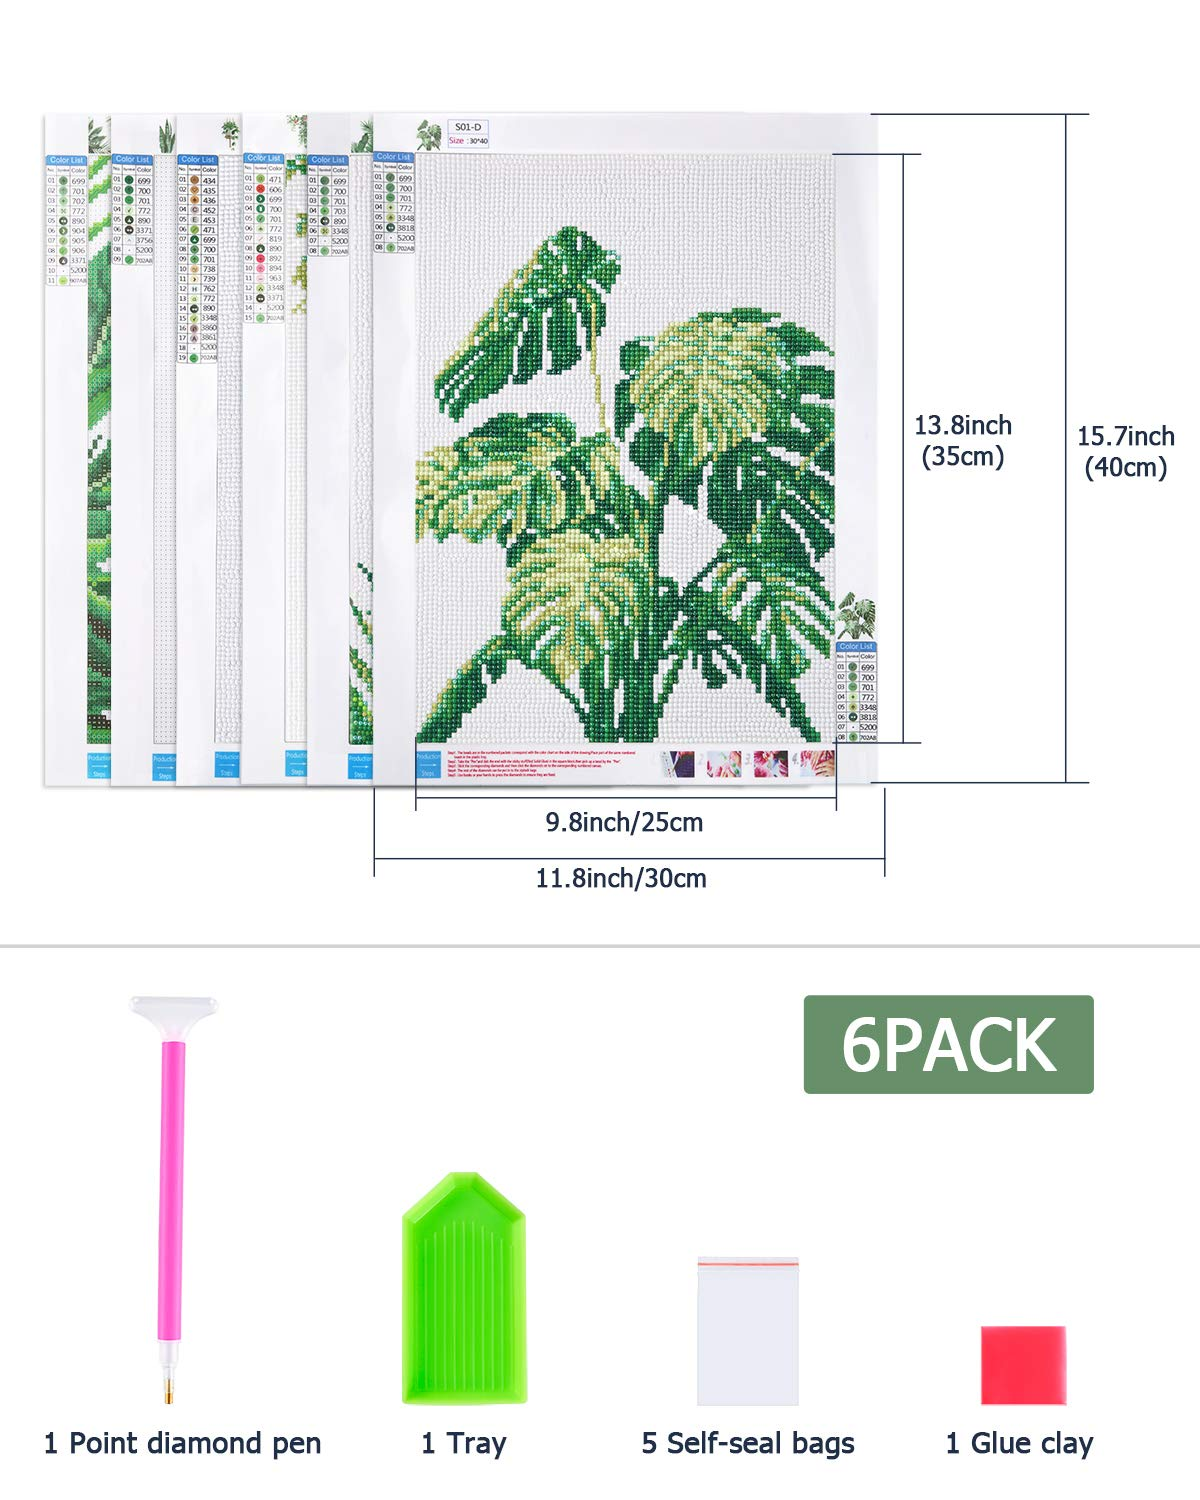 PP OPOUNT 6 Pack 5D Diamond Painting Art Kits, Green Plants Diamond Painting Round Diamond Cross Stitch Diamond Painting for Home Wall Decor(11.8x15.7 inch)